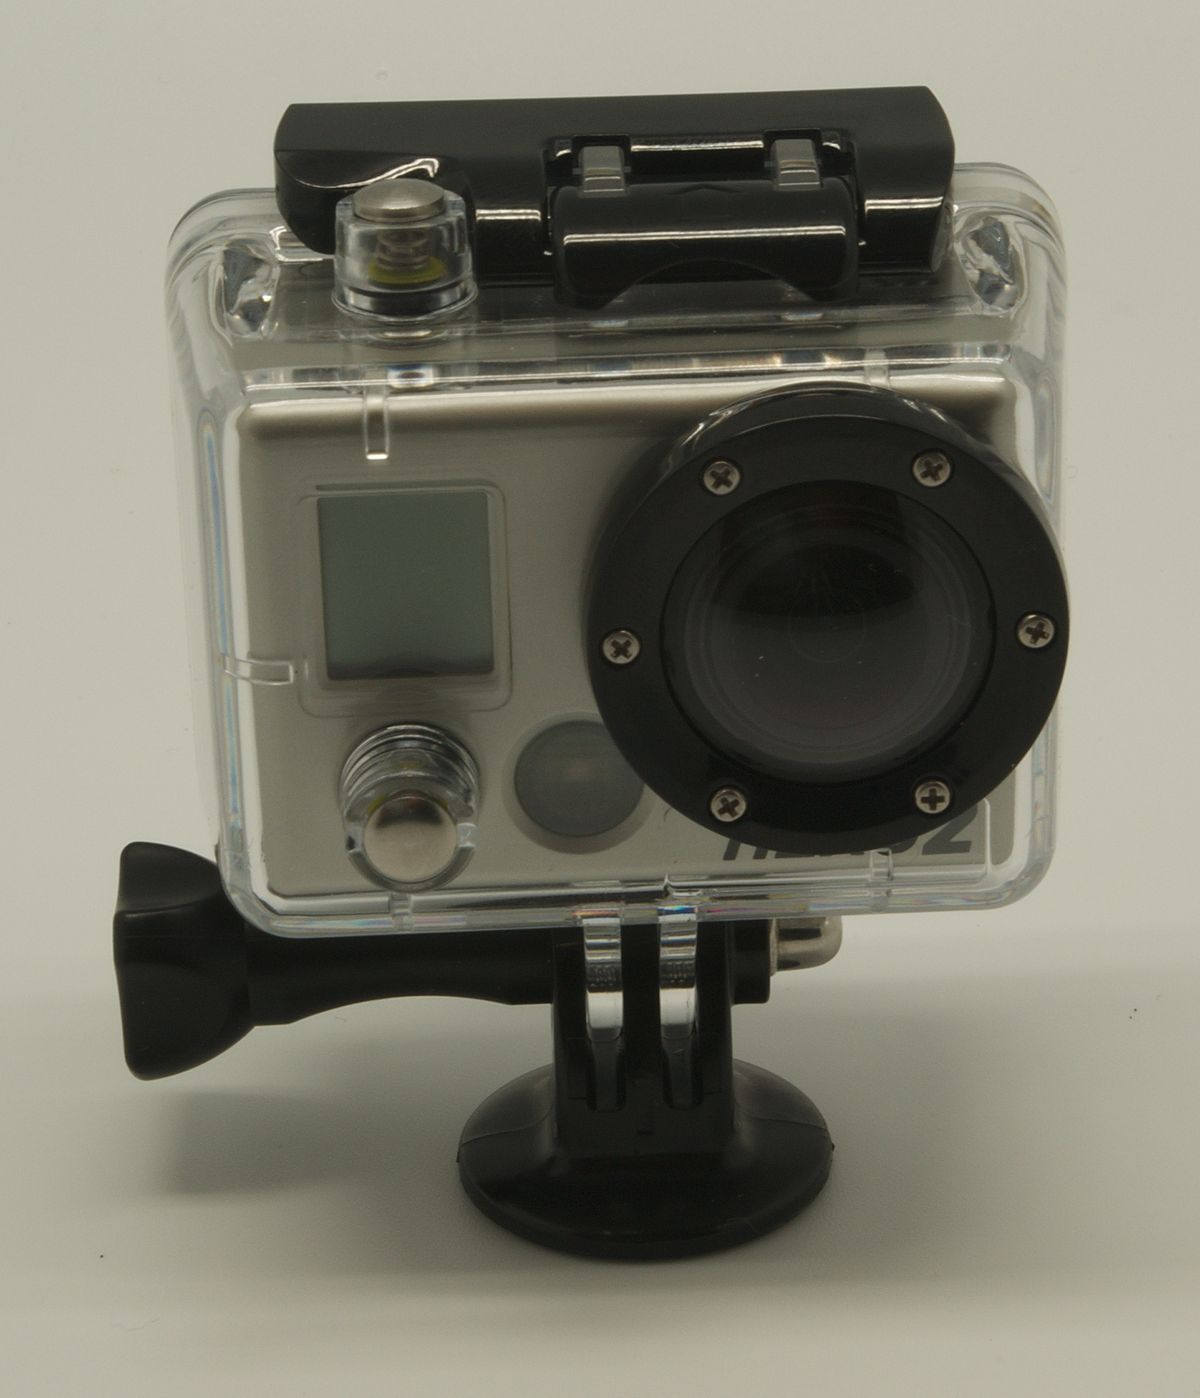 gopro black edition hero 3